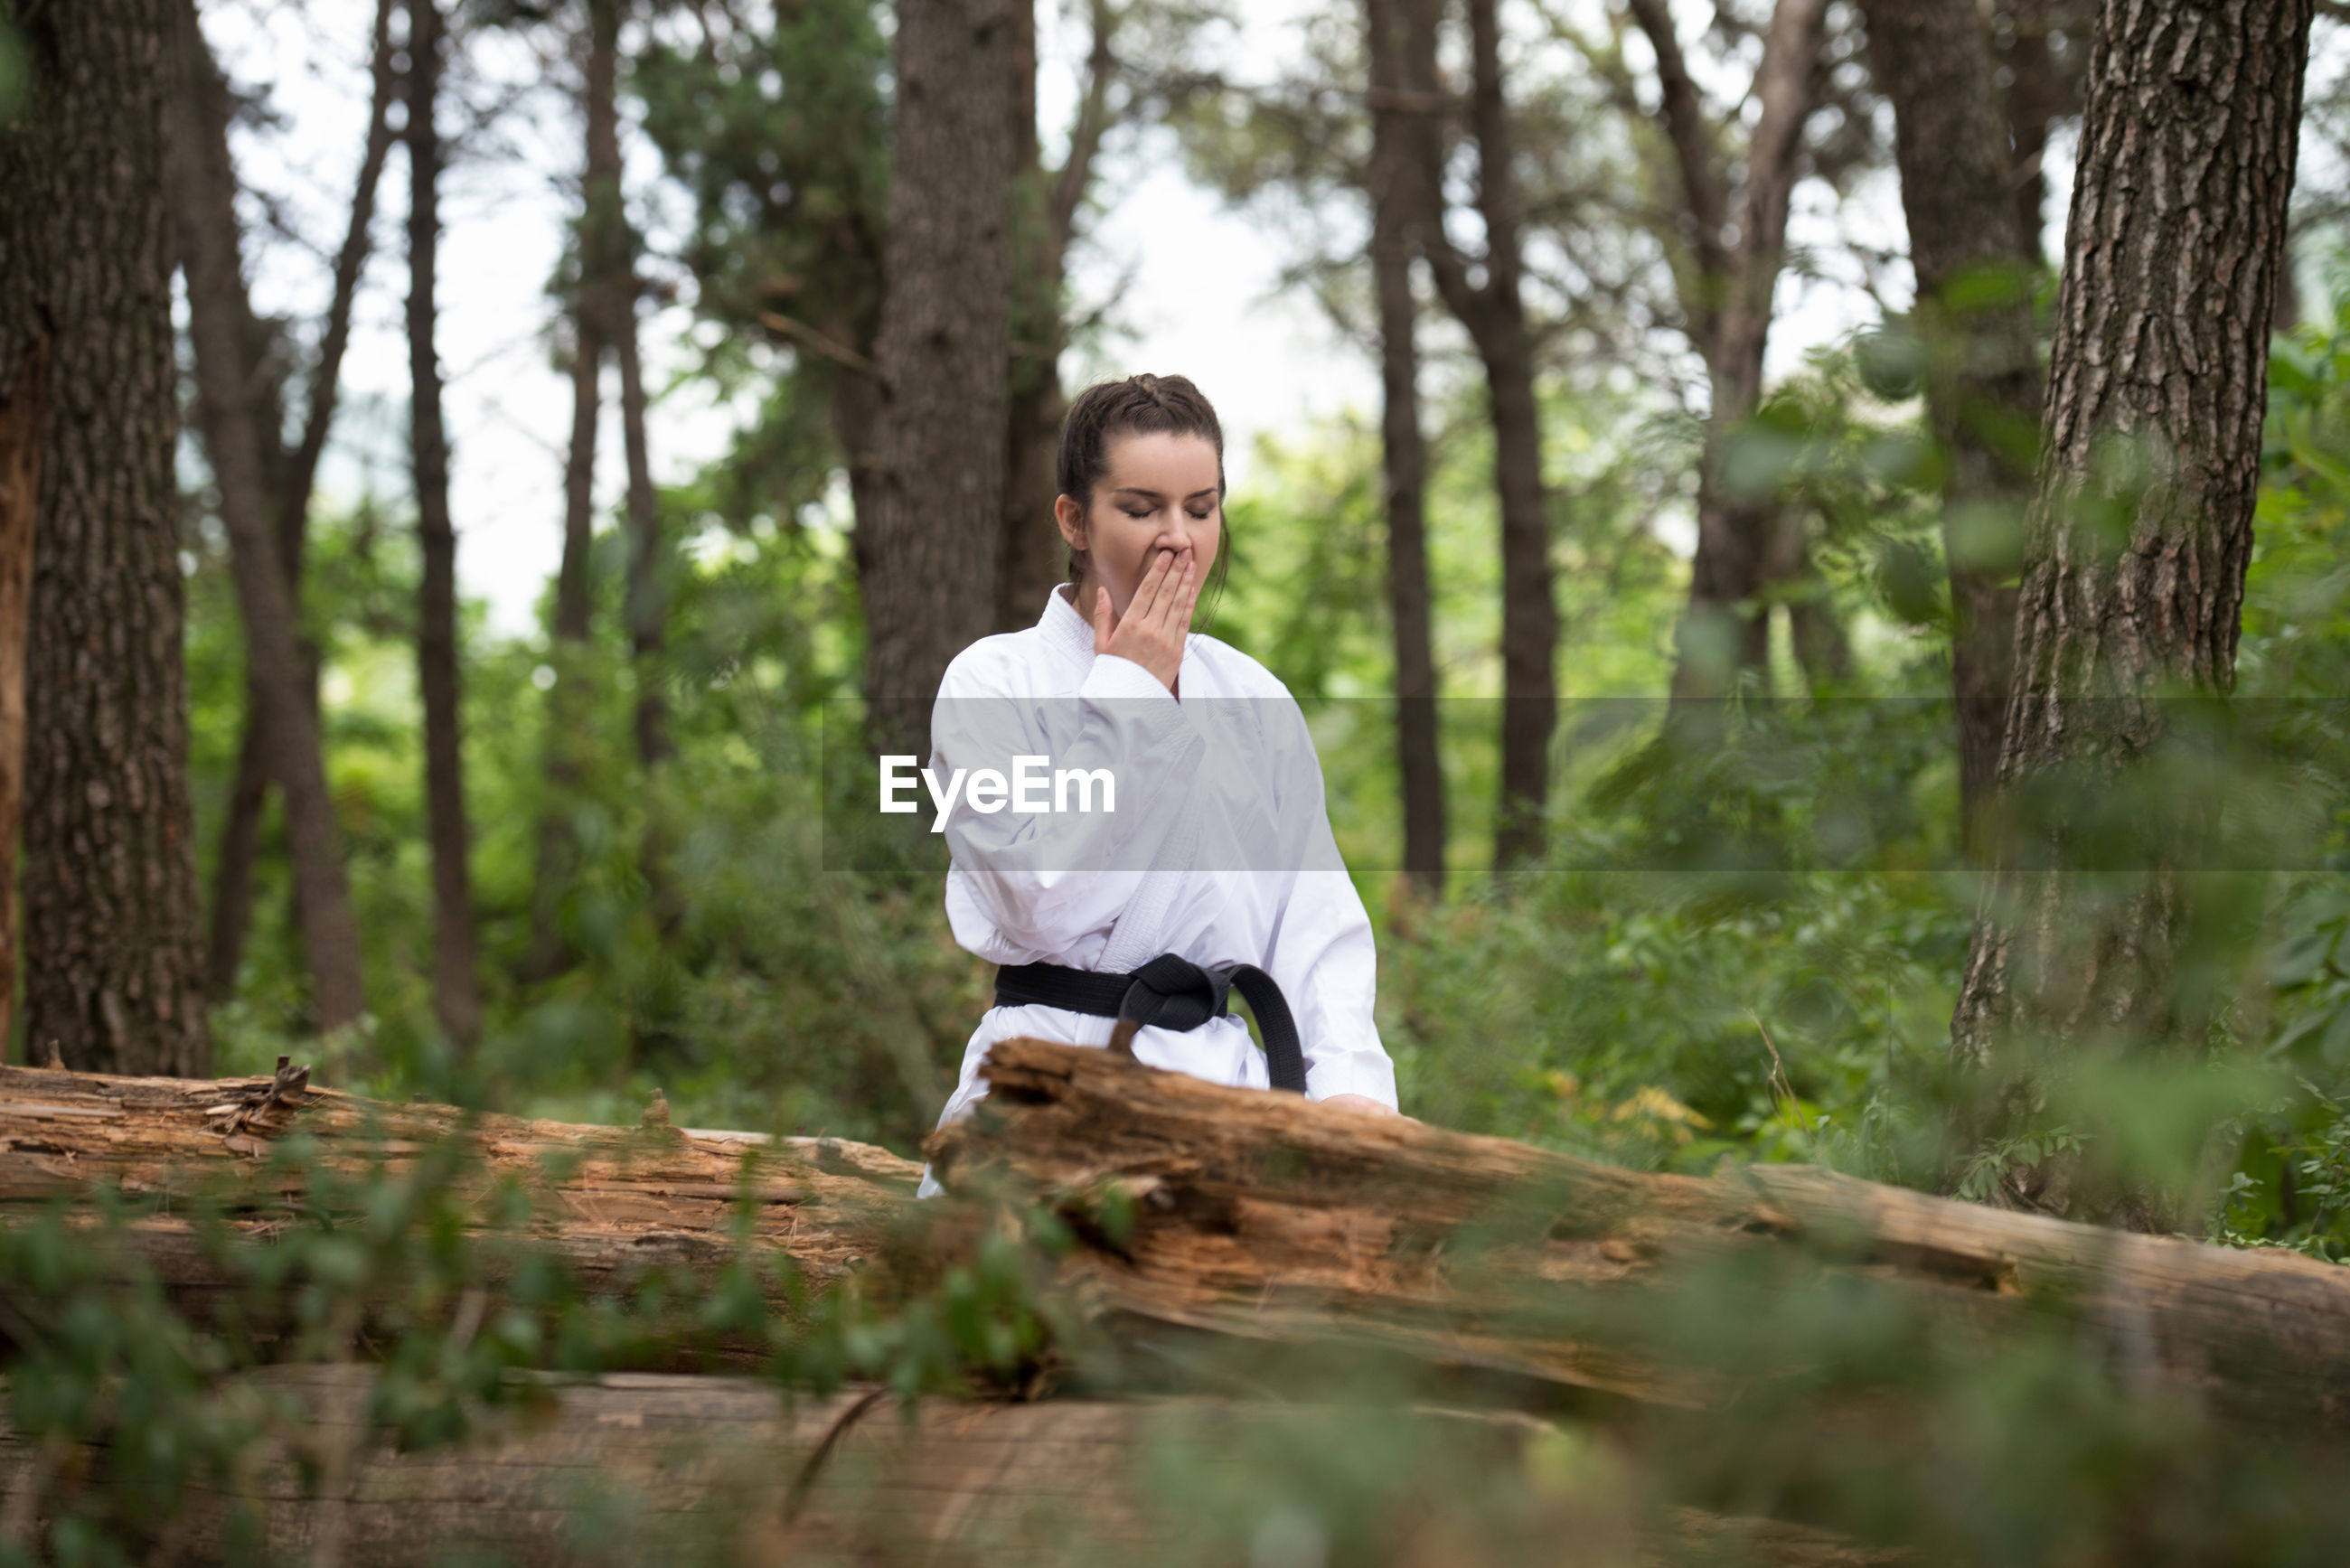 SMILING WOMAN IN FOREST